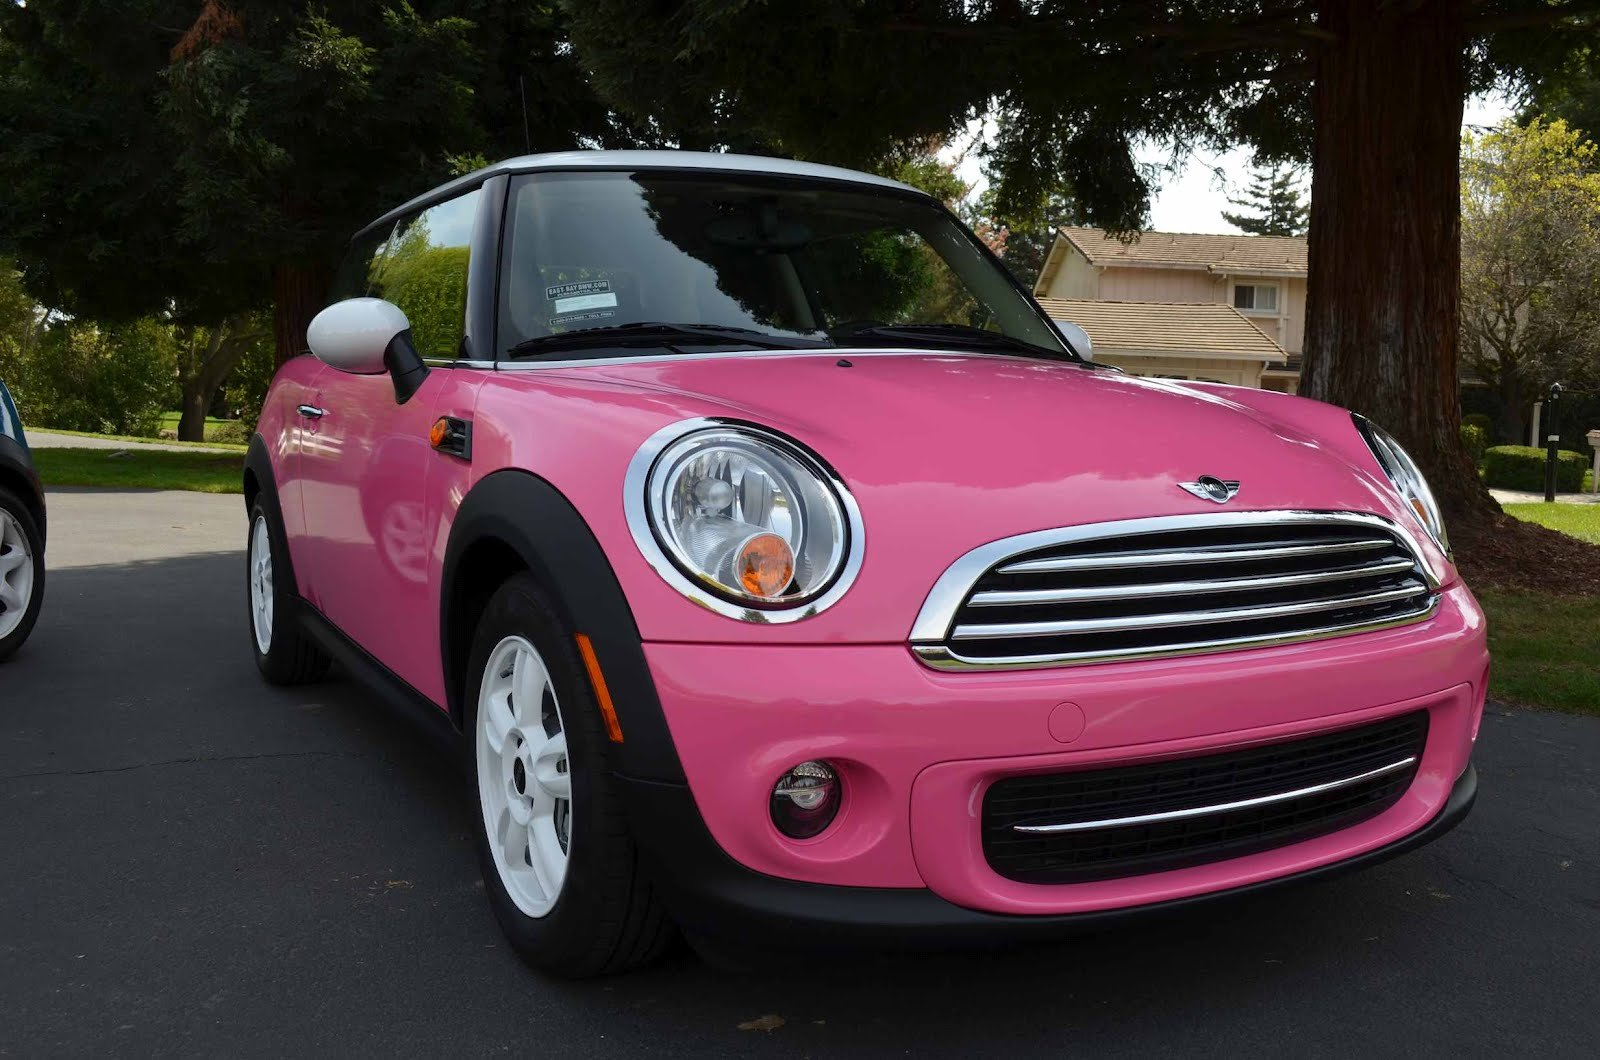 New Dave Car Guy Pink Mini Cooper Joins The Garage On This Month